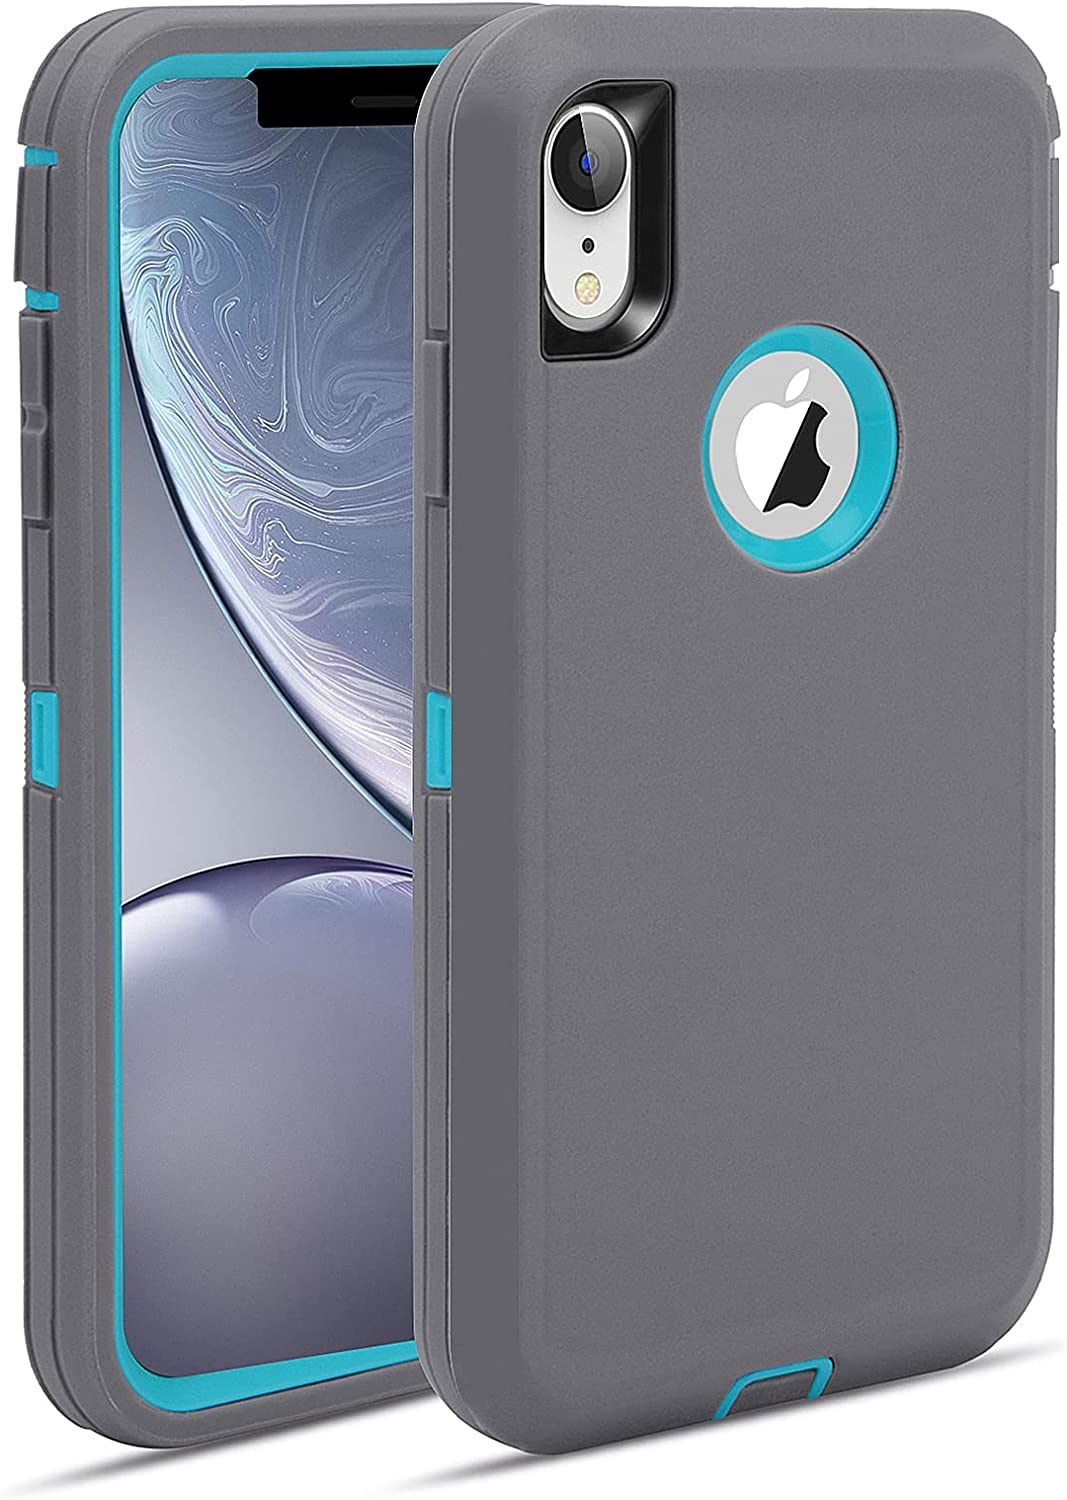 MAXCURY for iPhone XR Case, Heavy Duty Shock Absorption Full Body Protective iPhone XR Case with Hard PC Bumper + Soft TPU Back Cover for iPhone XR Not Built in Screen Protector (Grey/Turquoise)